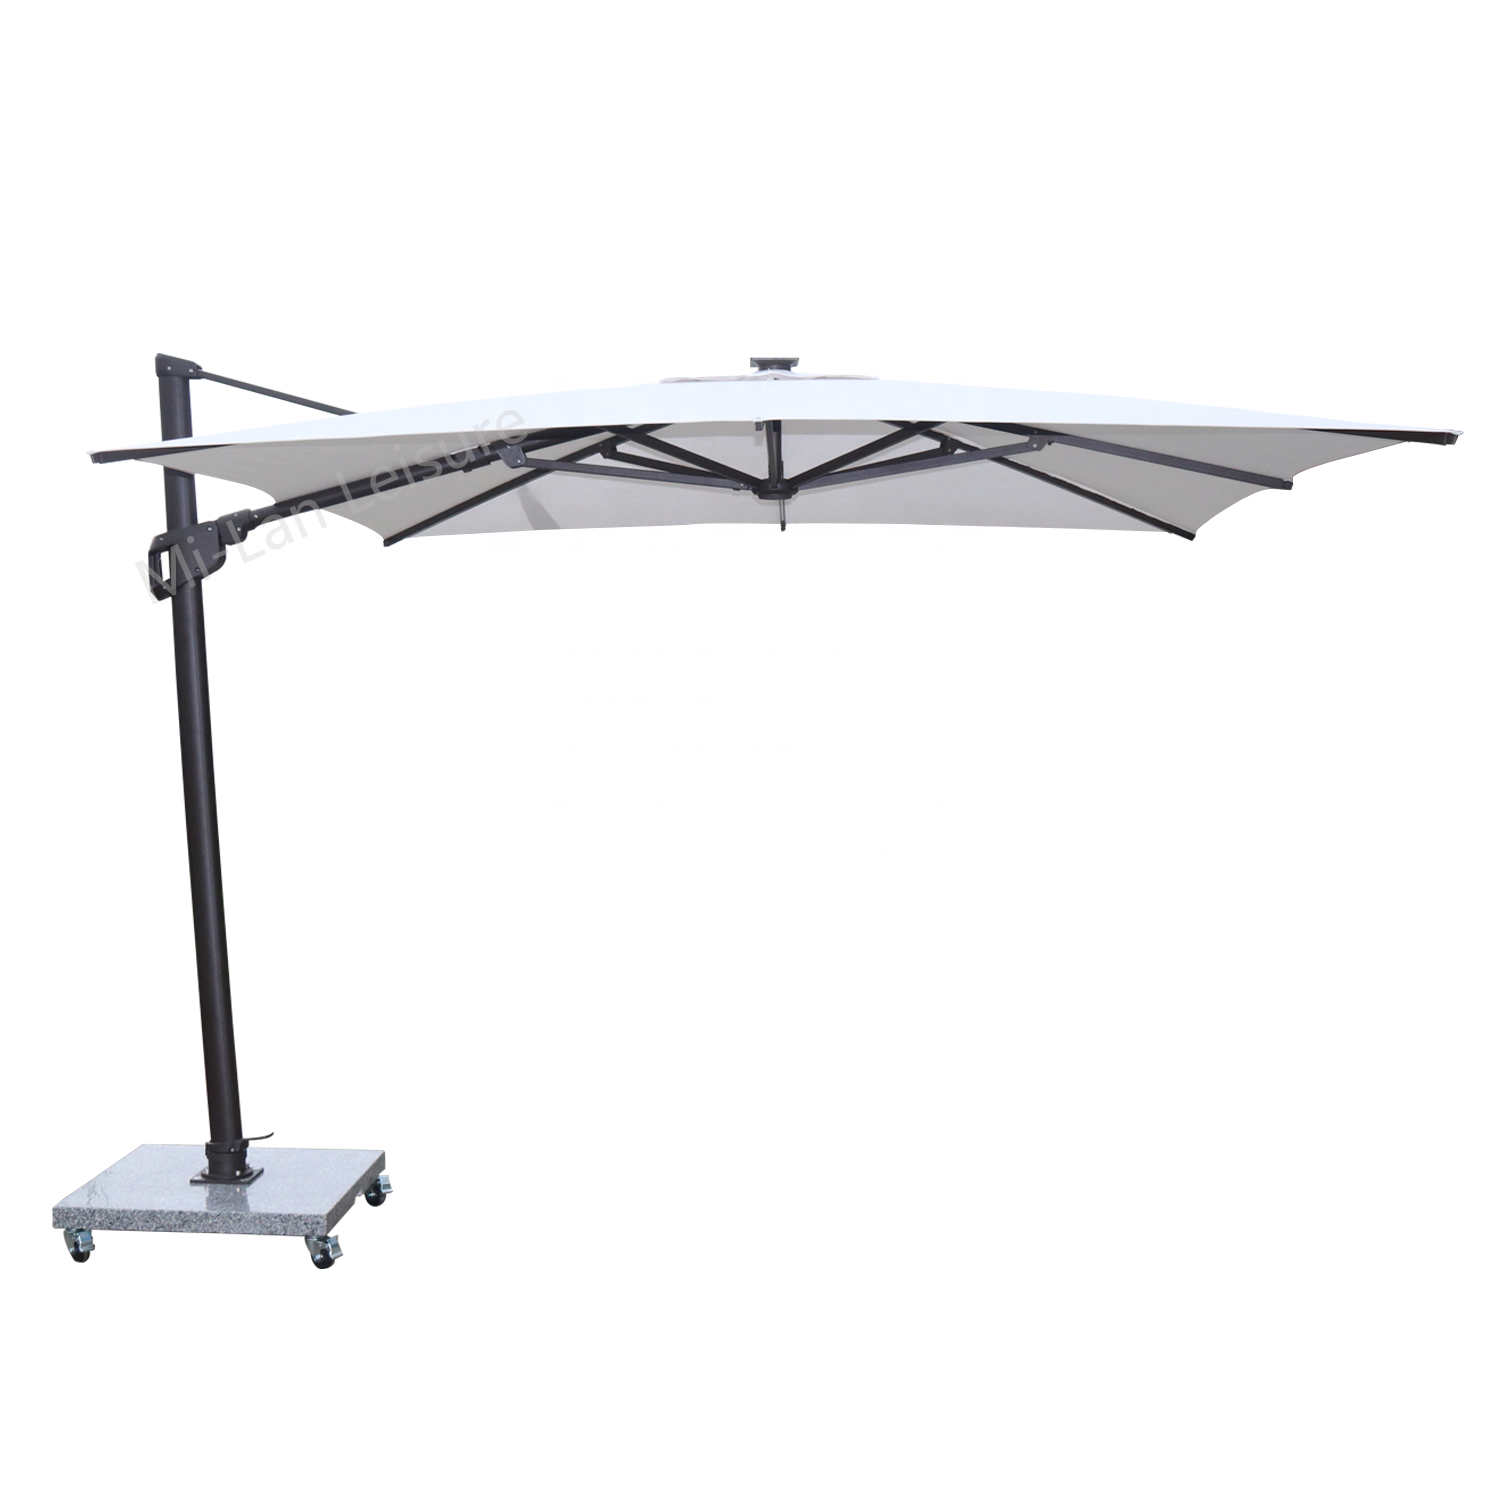 3x3M LED Commercial Hanging Patio Cantilever Umbrella Parasol Olefin Fabric Aluminium Frame LED Offset Umbrella